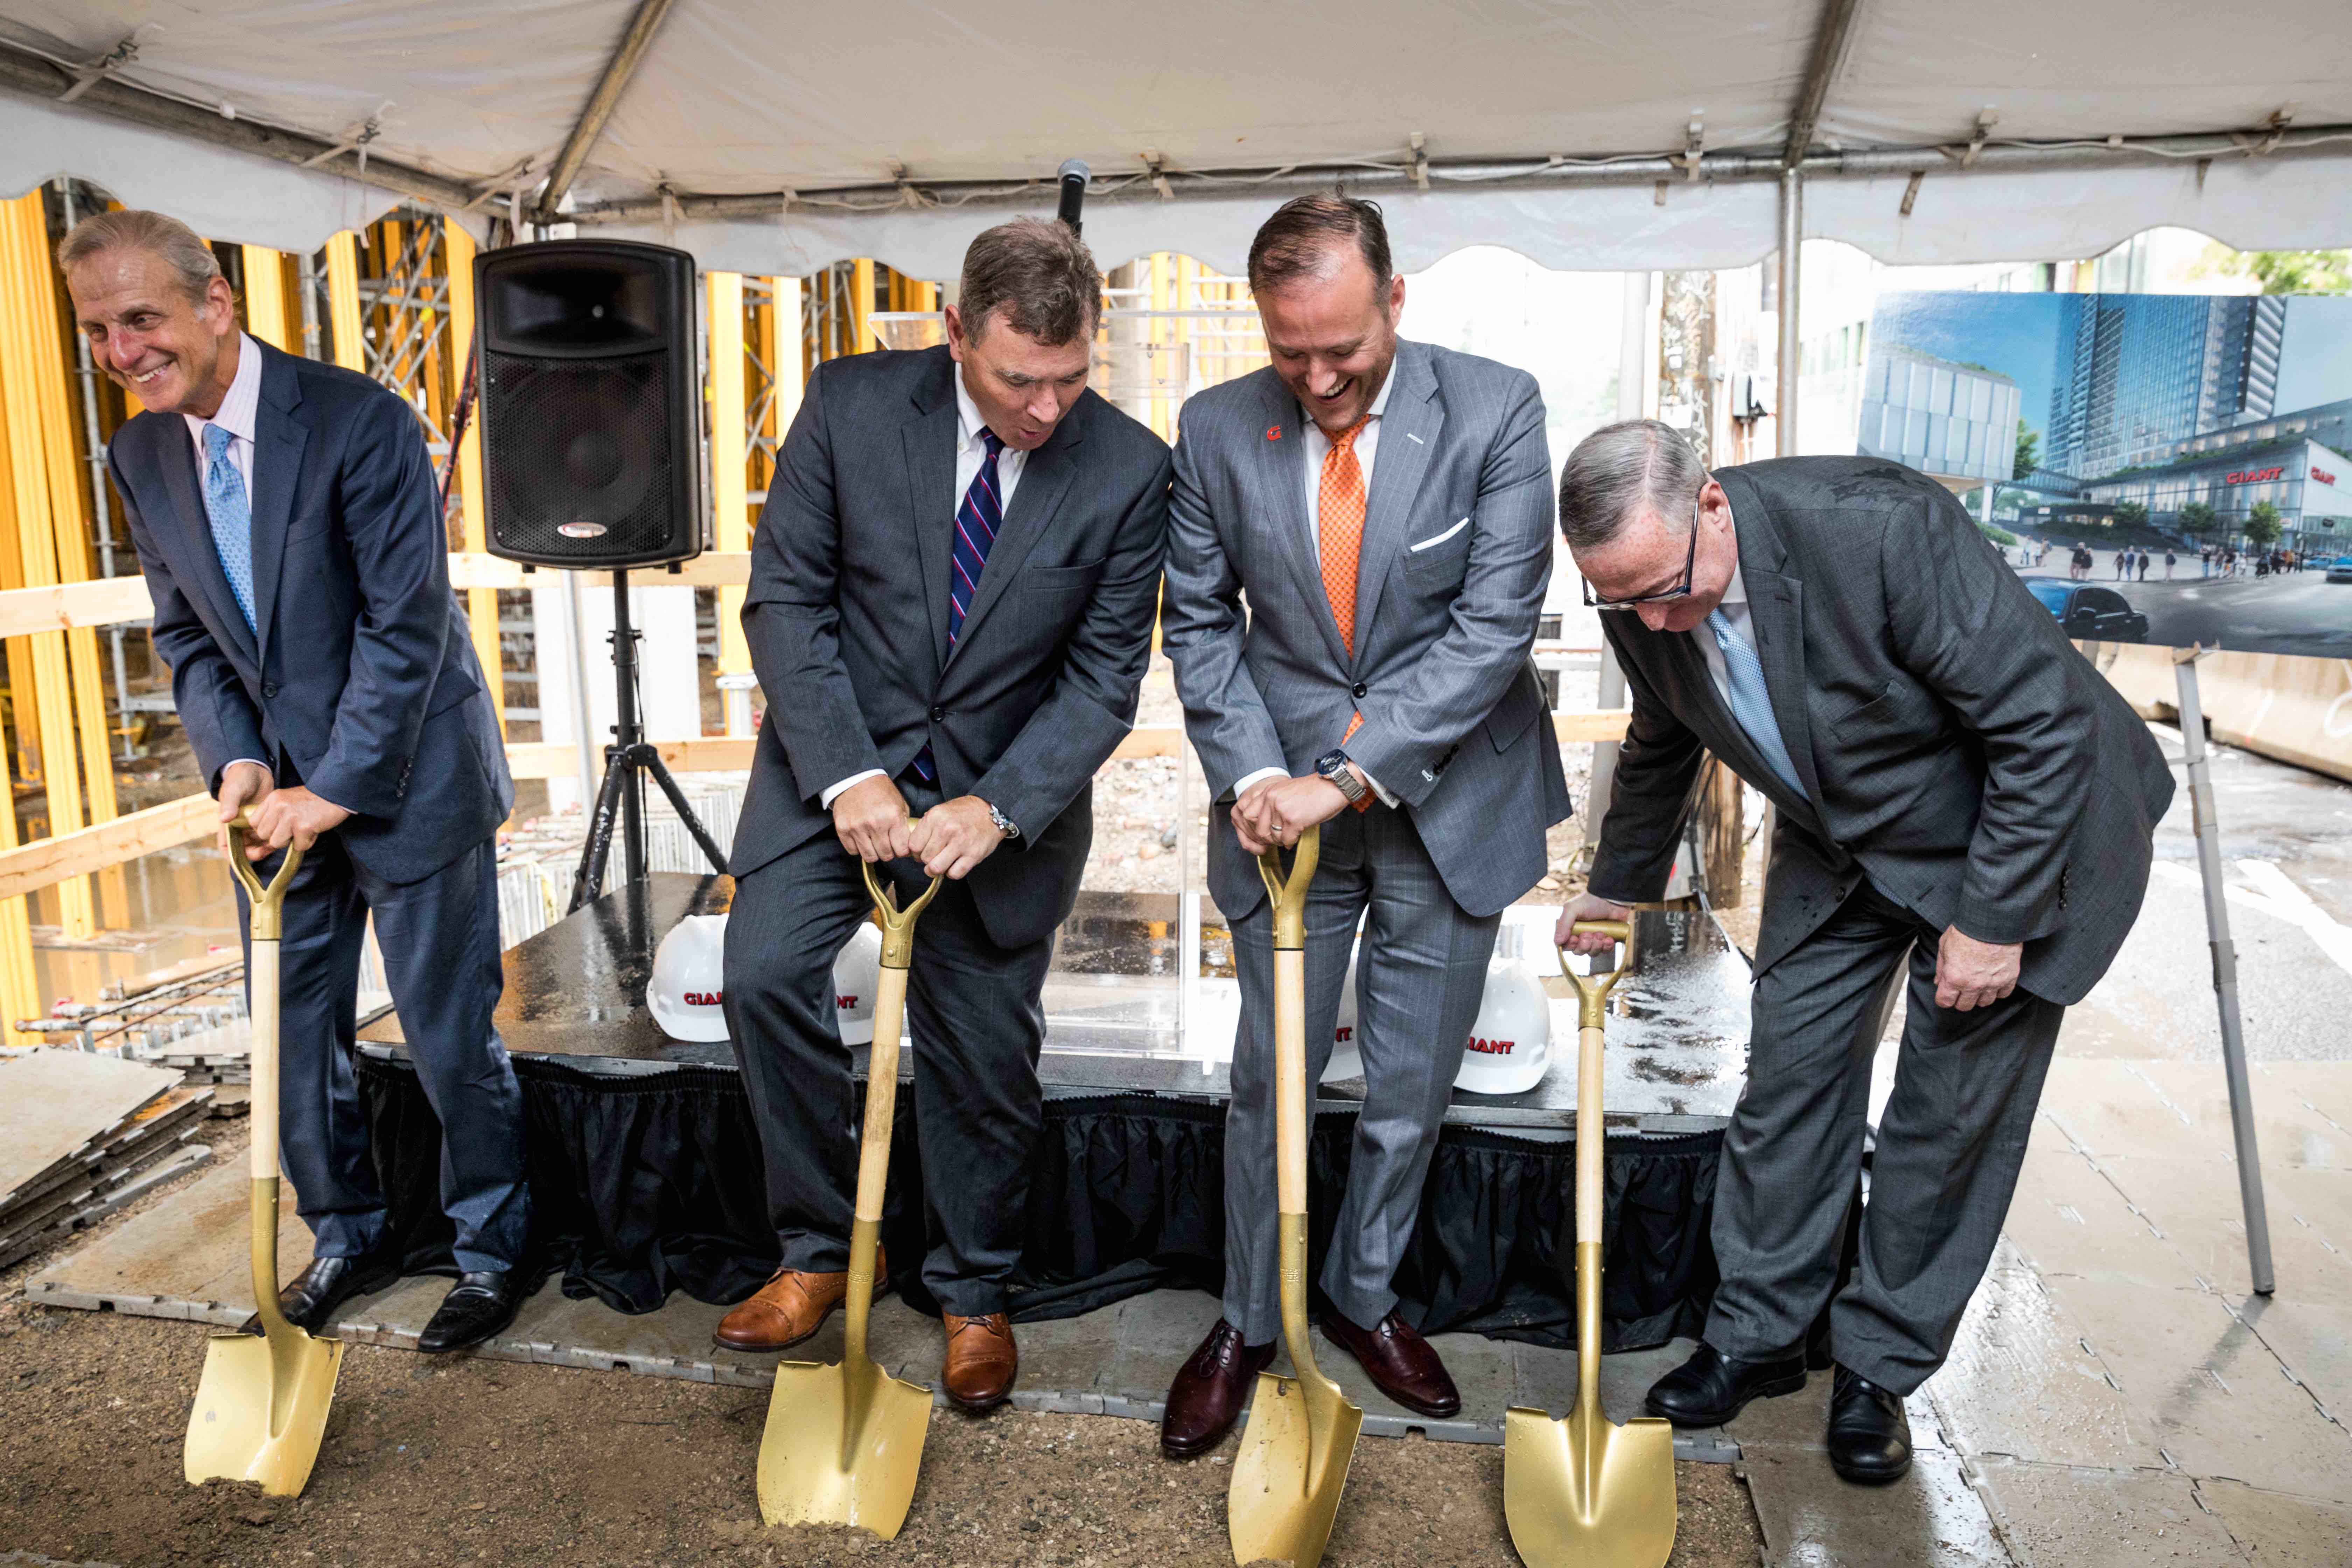 Giant Breaks Ground on Flagship Grocery Store in Center City